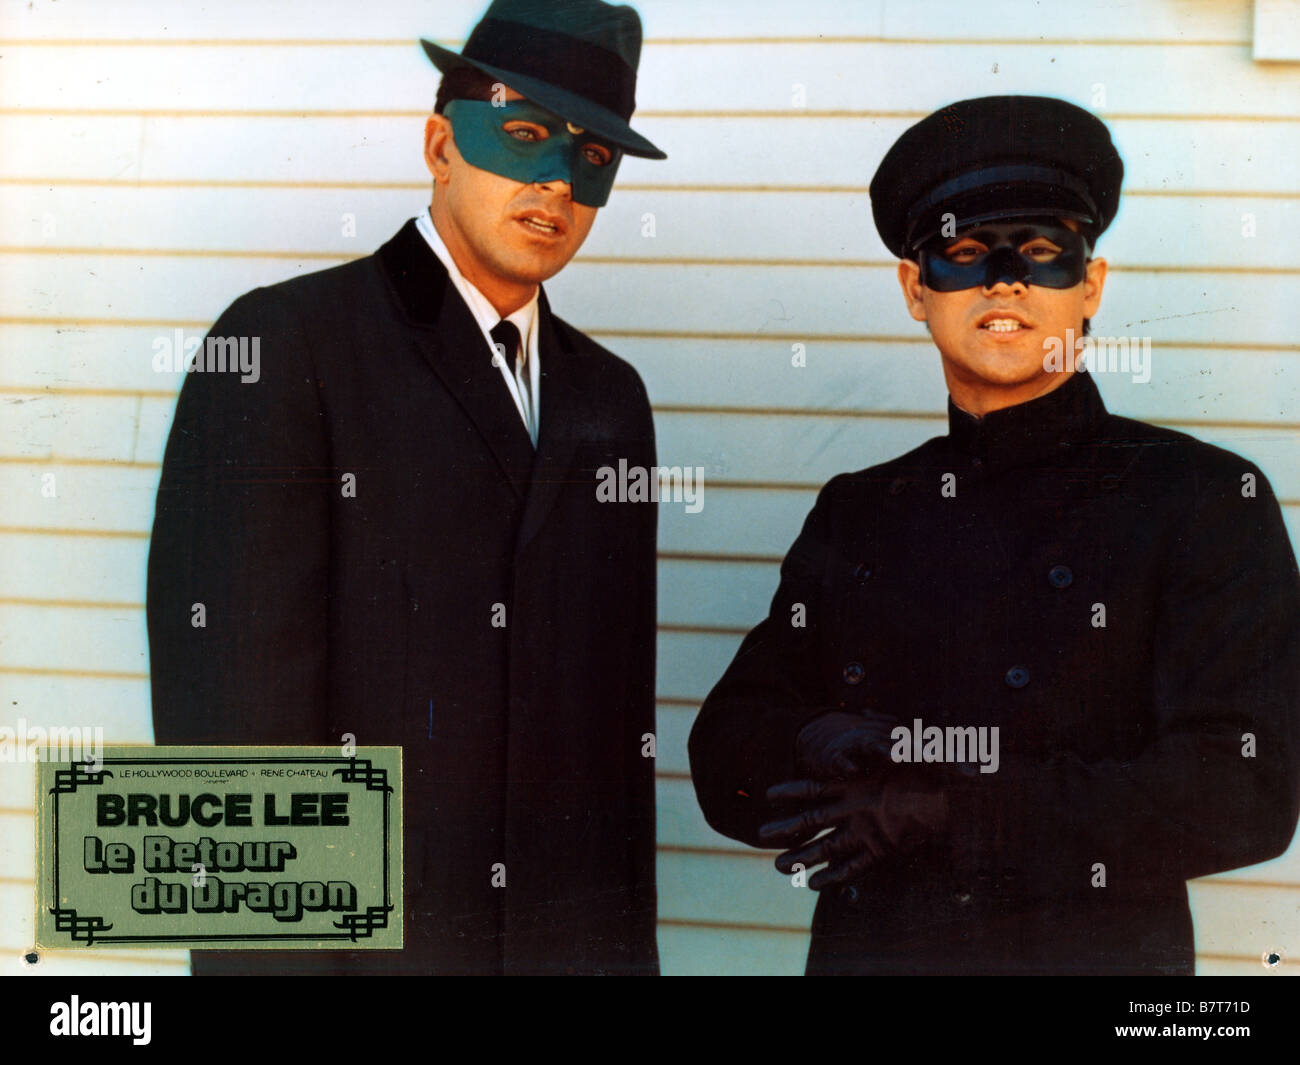 The Green hornet TV Series 1966 - 1967 USA Created by George W. Trendle Van Williams, Bruce Lee - Stock Image